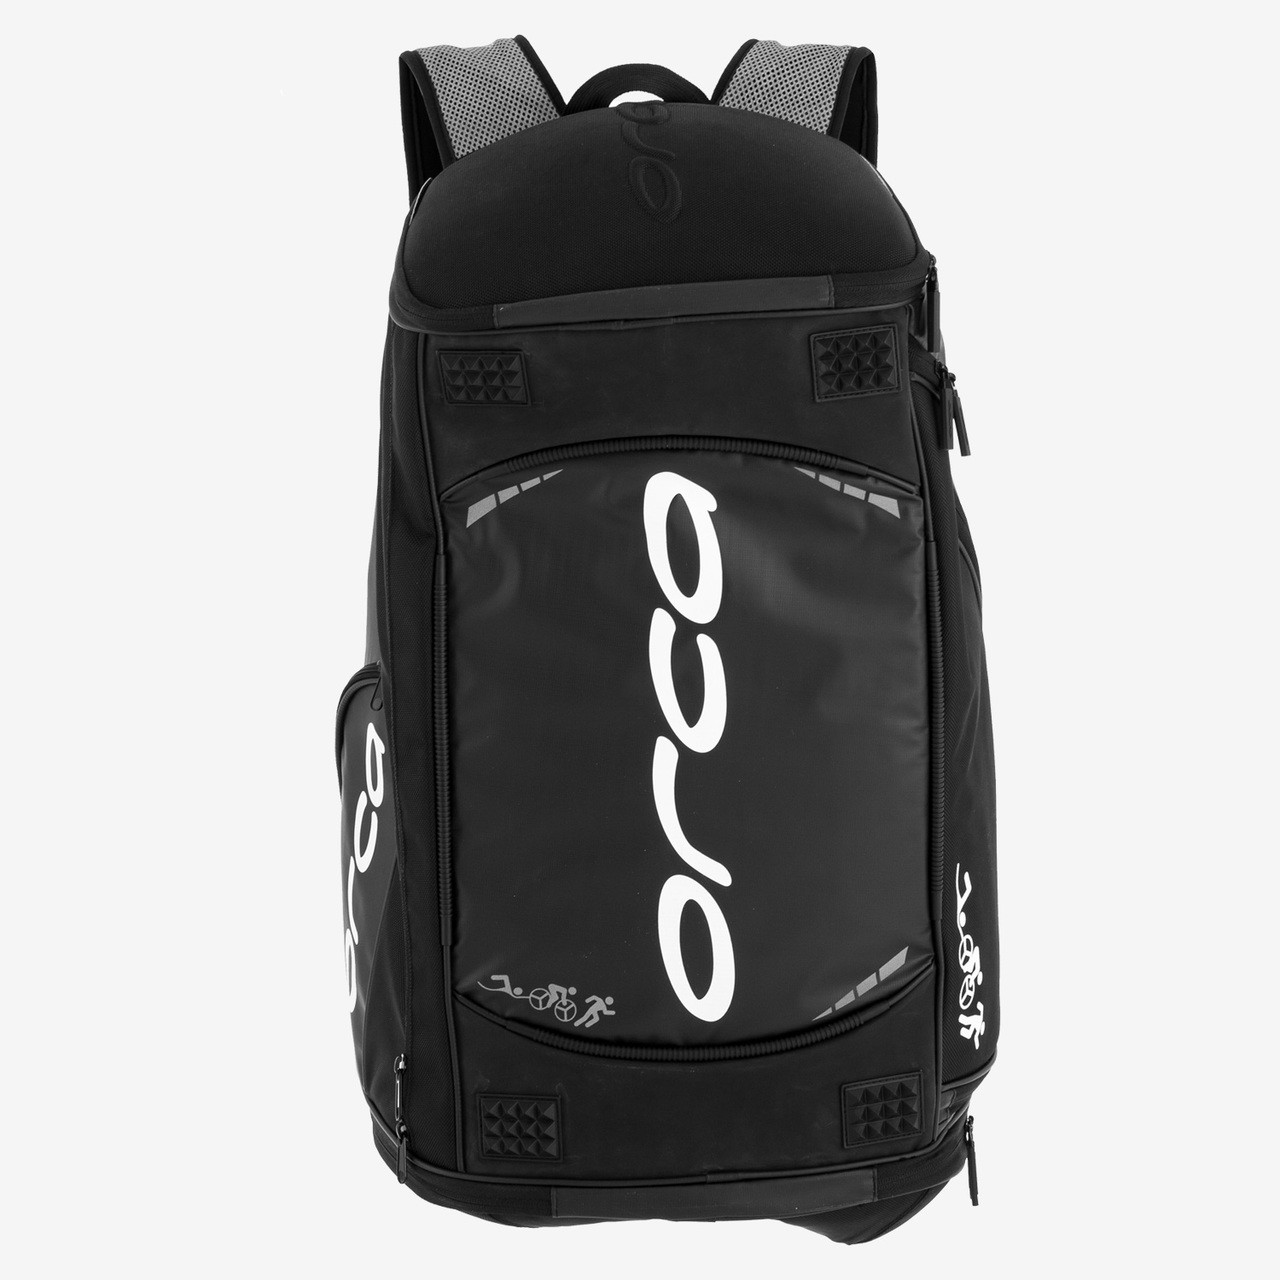 Orca Transition Bag - 2019 price